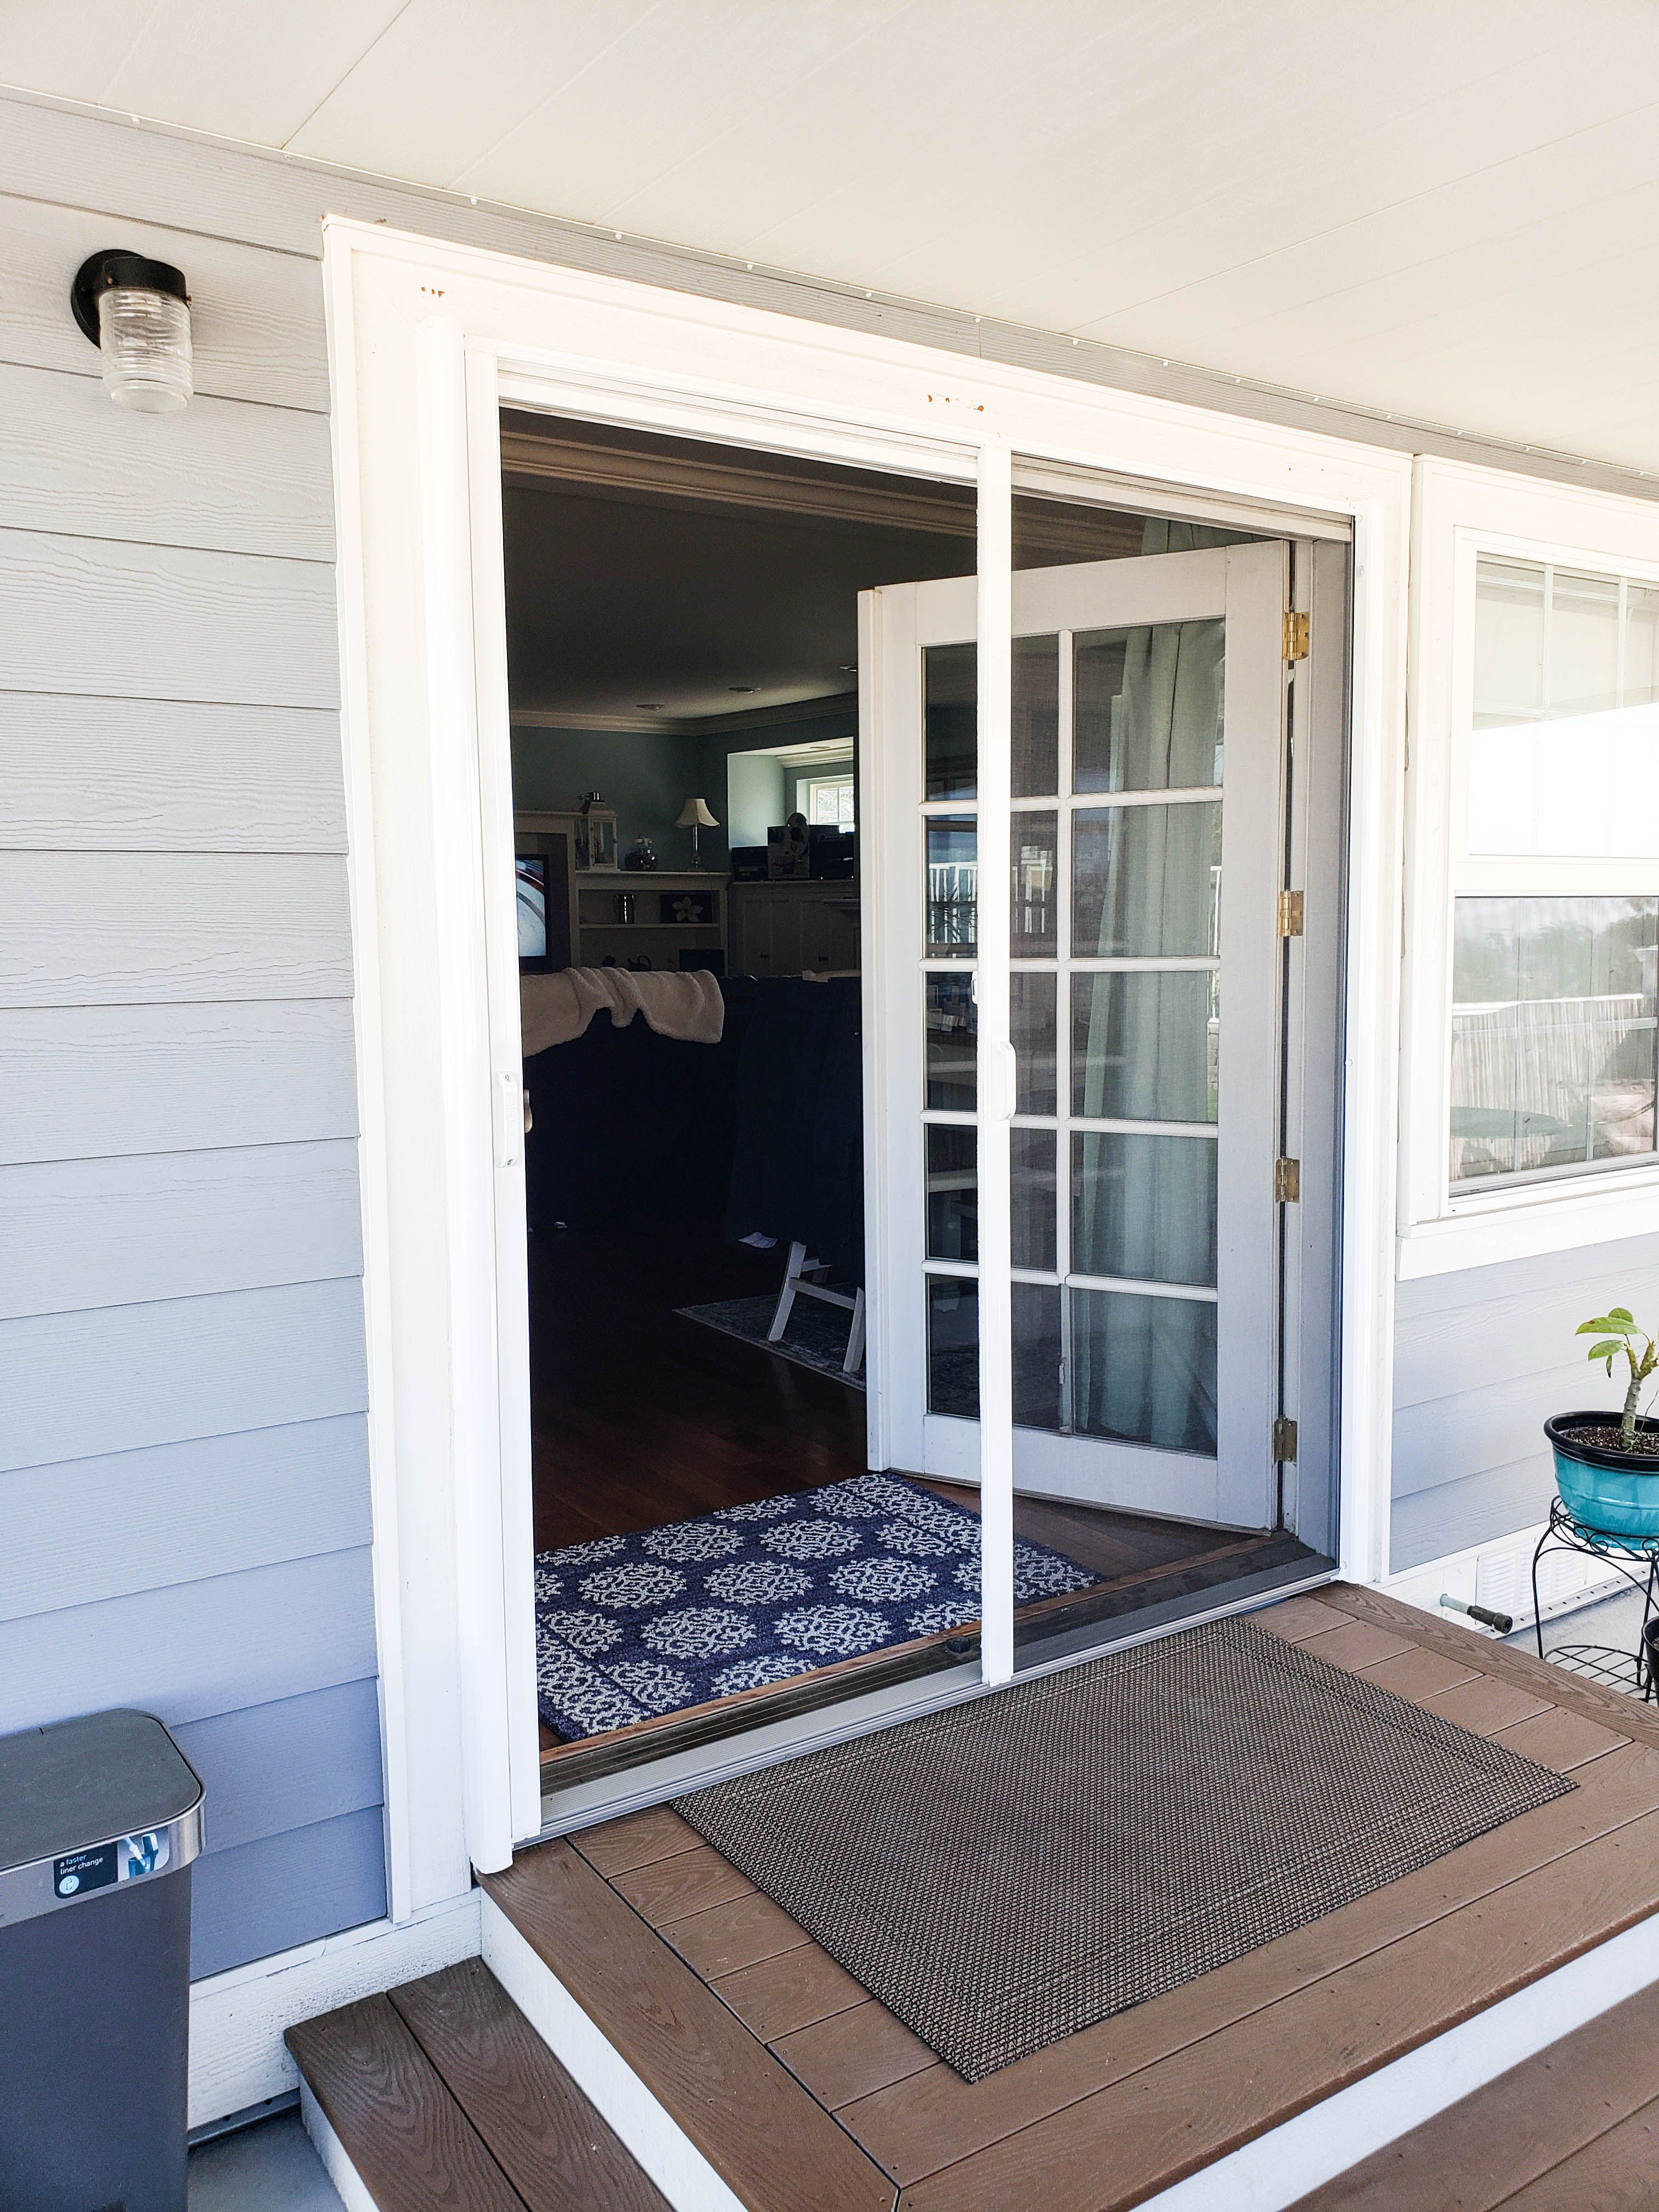 Our Team Installed These Double Door Retractable Screens With A French Door Kit Over A Set Of French Do In 2020 French Doors Retractable Screen Retractable Screen Door